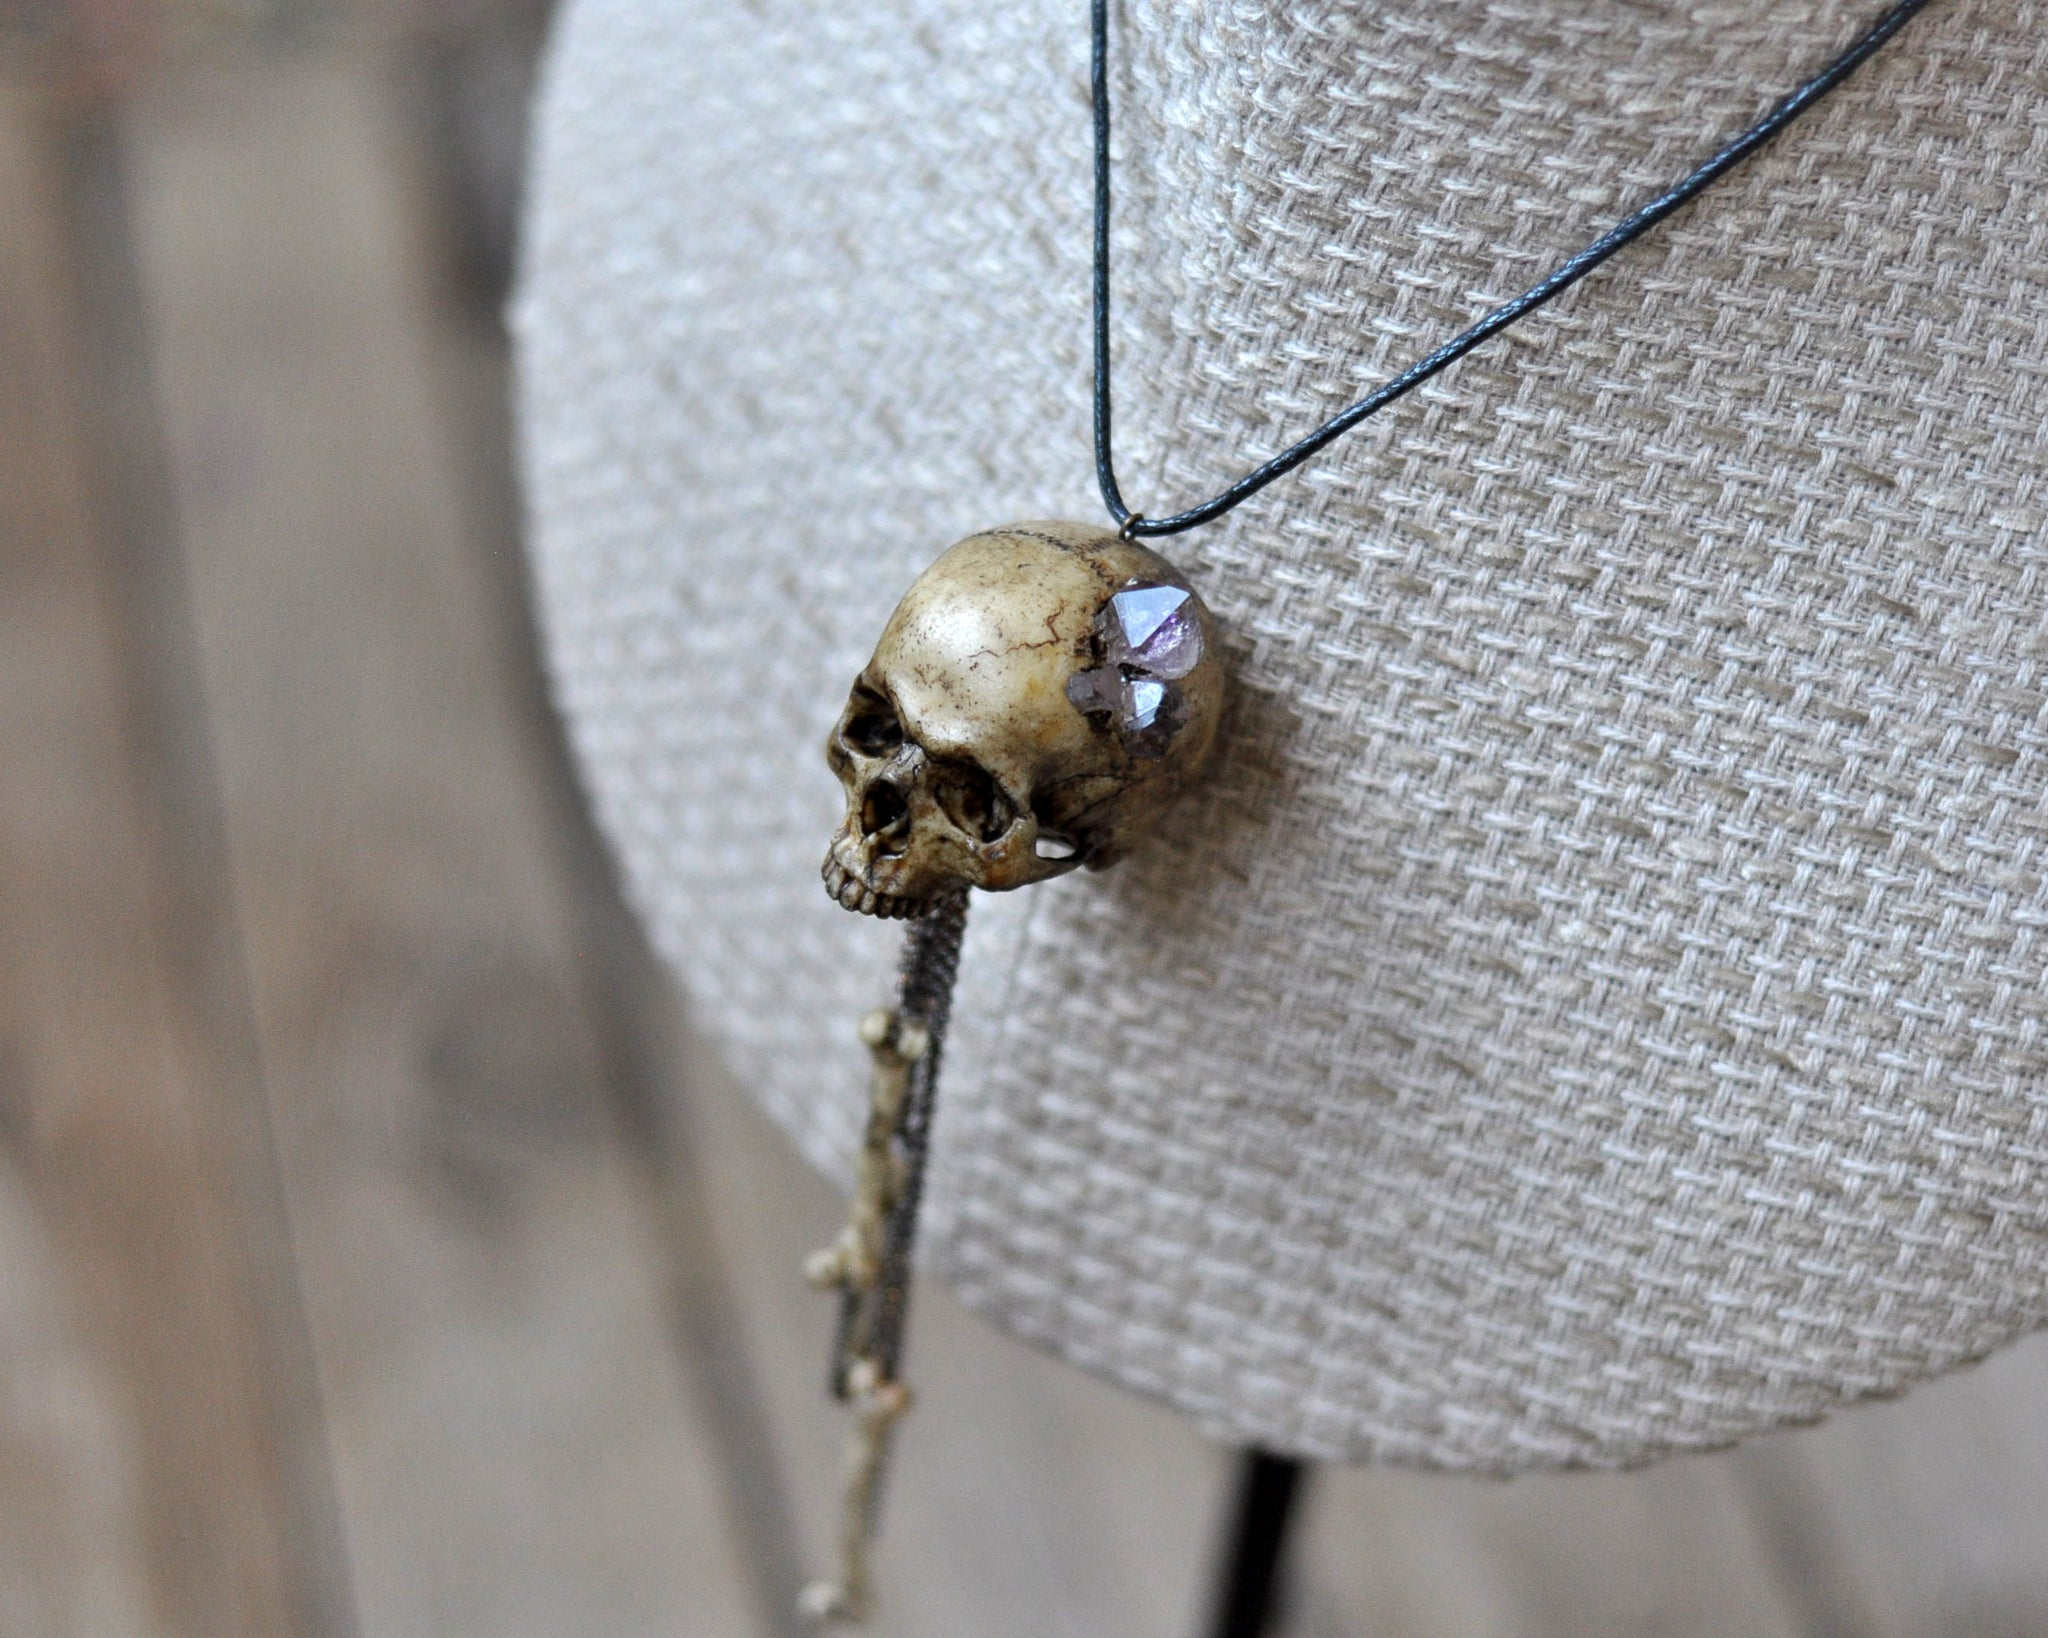 High Detailed Realistic Replica Human Skull Necklace, Realistic Bones and Skull Pendant, Gothic Style Resin Jewelry, Gothic Accessories